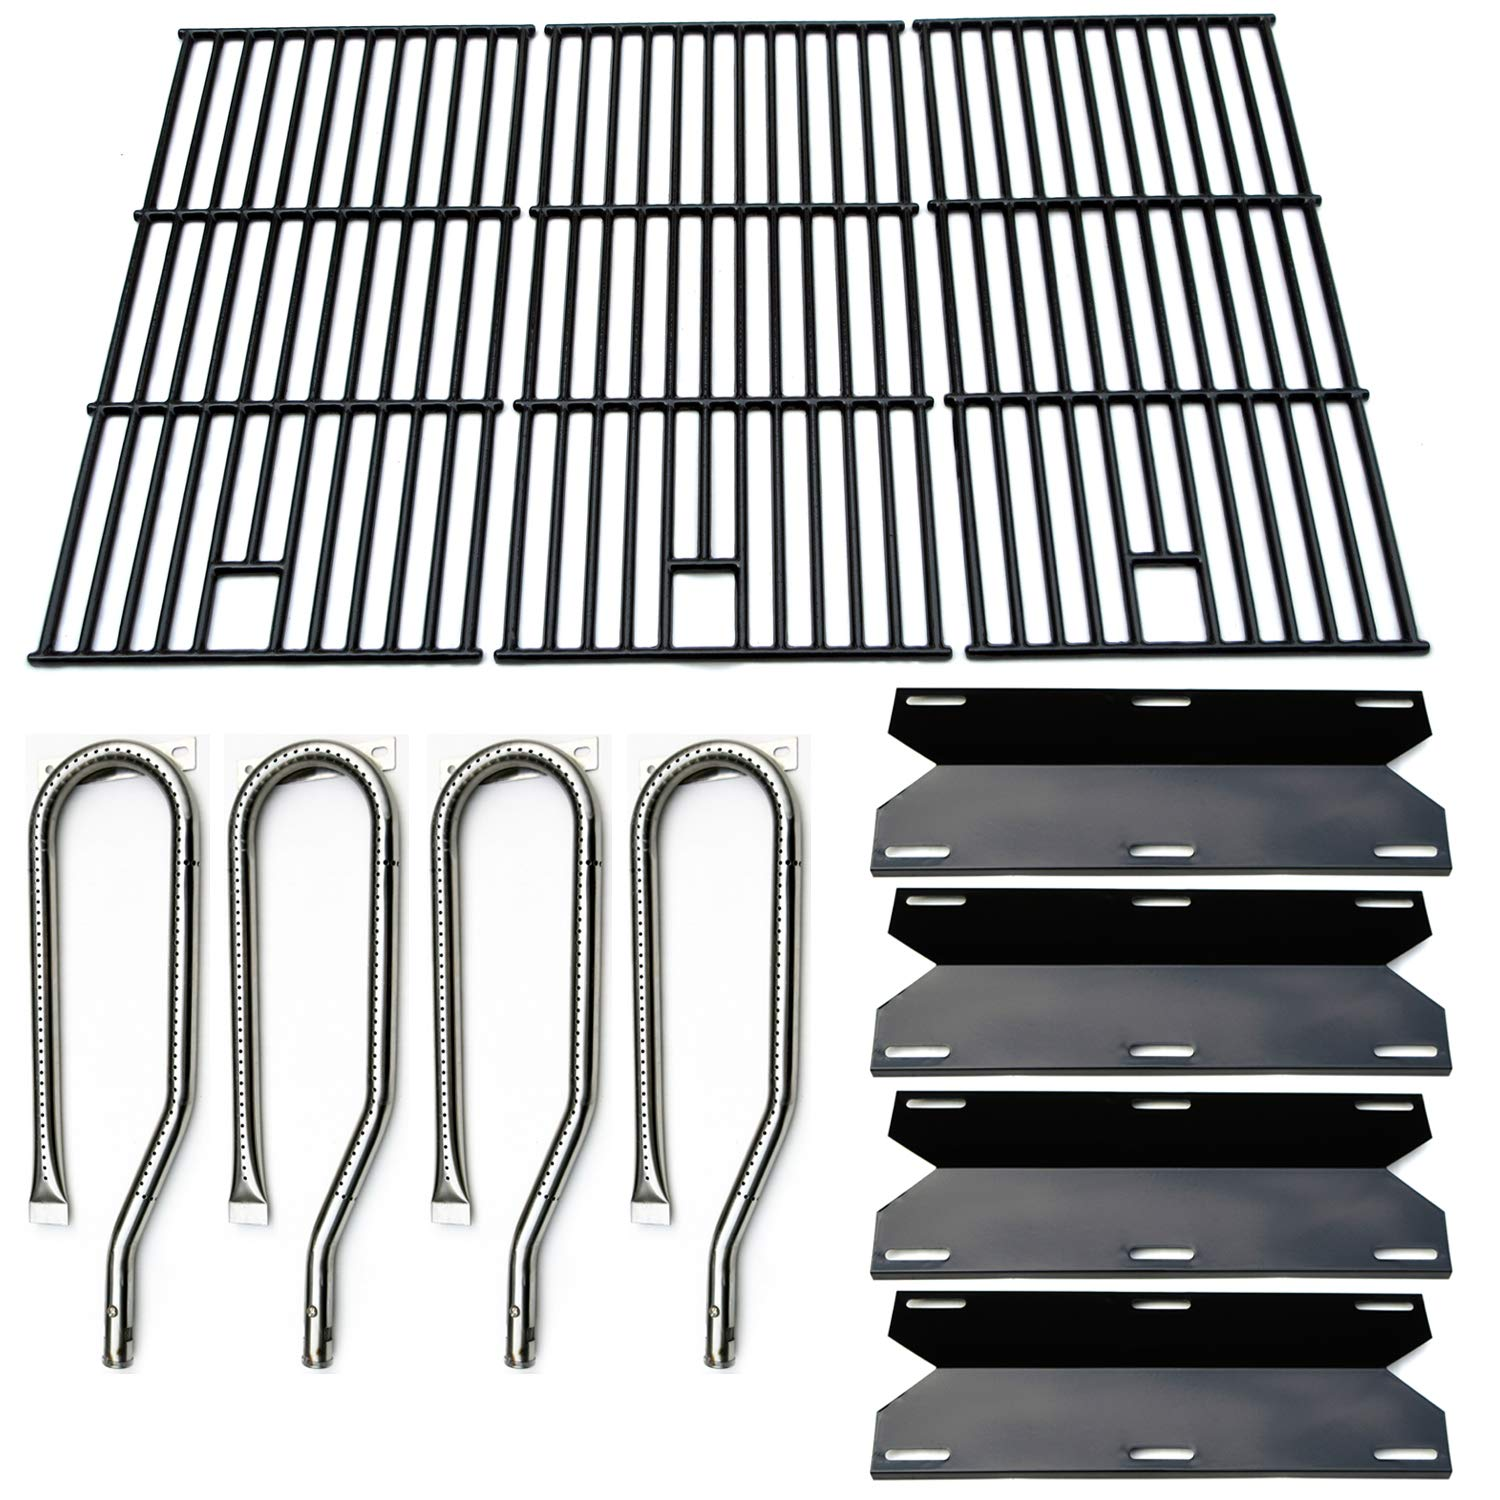 Direct store Parts Kit DG128 Replacement Jenn Air Gas Grill 720-0337 Gas Grill Burners,Heat Plates,Cooking grids(Stainless Steel Burner + Porcelain Steel Heat Plate + Porcelain Cast Iron Cooking Grid)